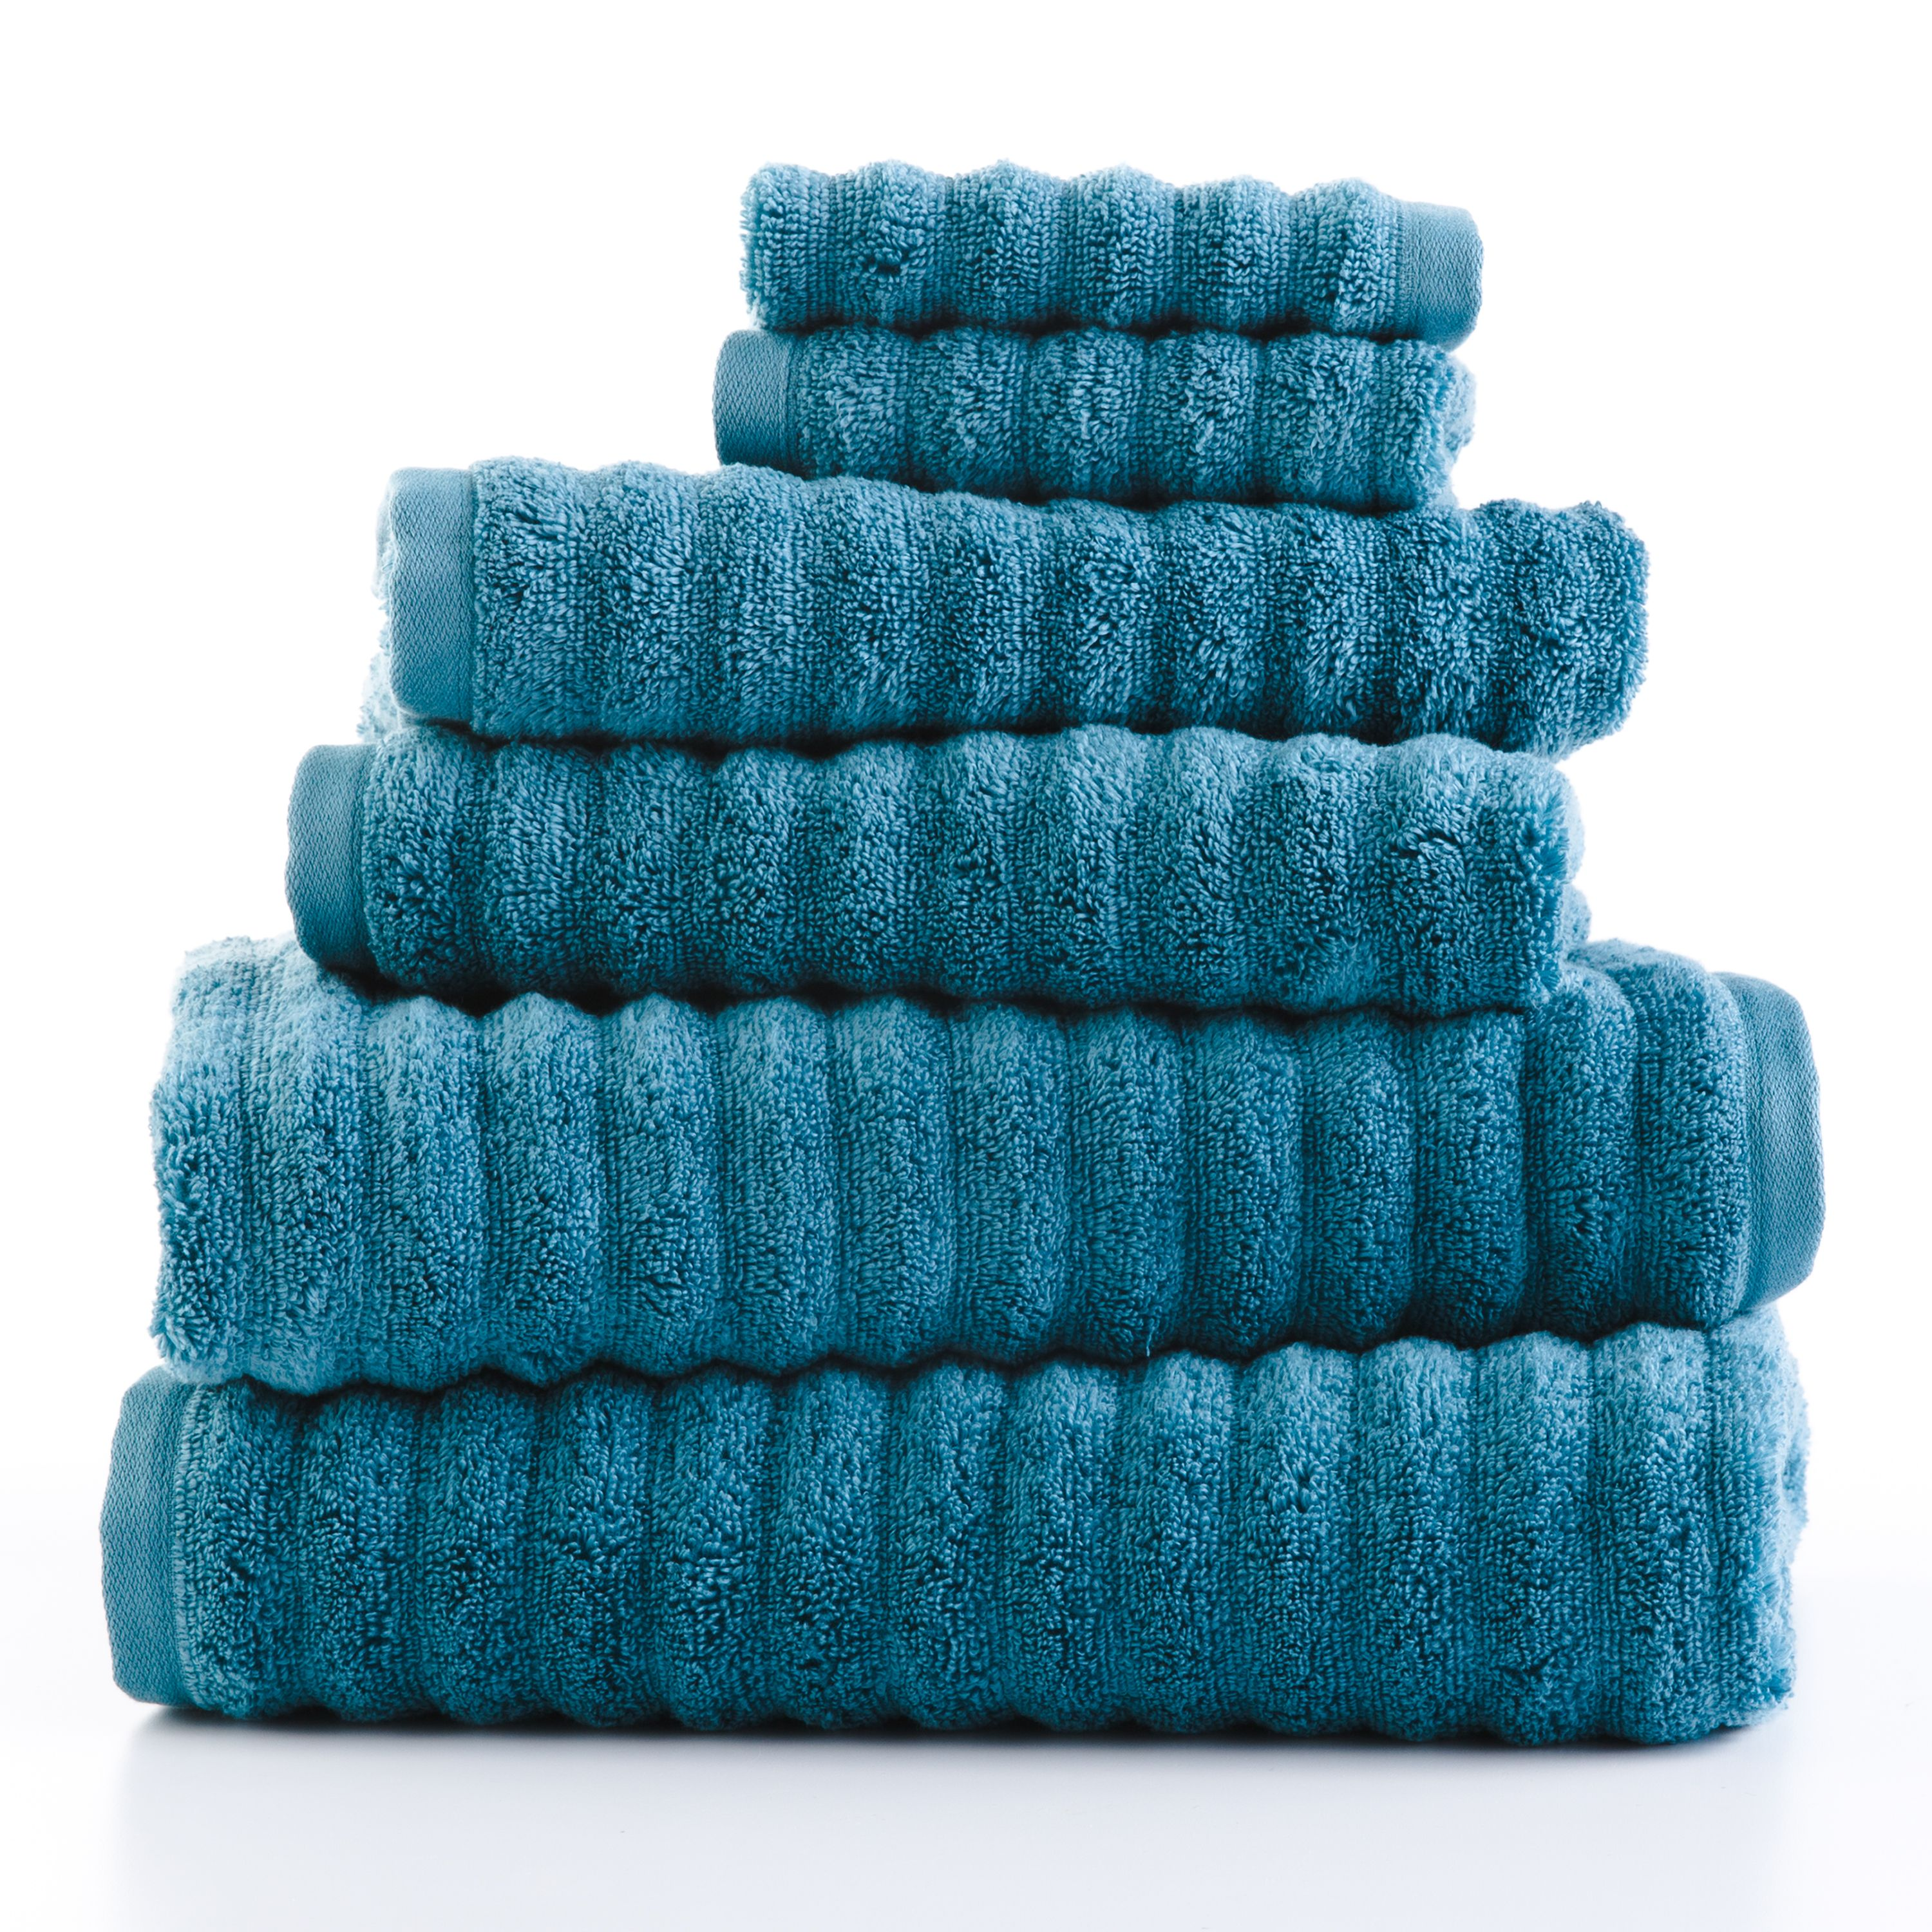 Home Towel Set Bath Towels Bath Towel Sets